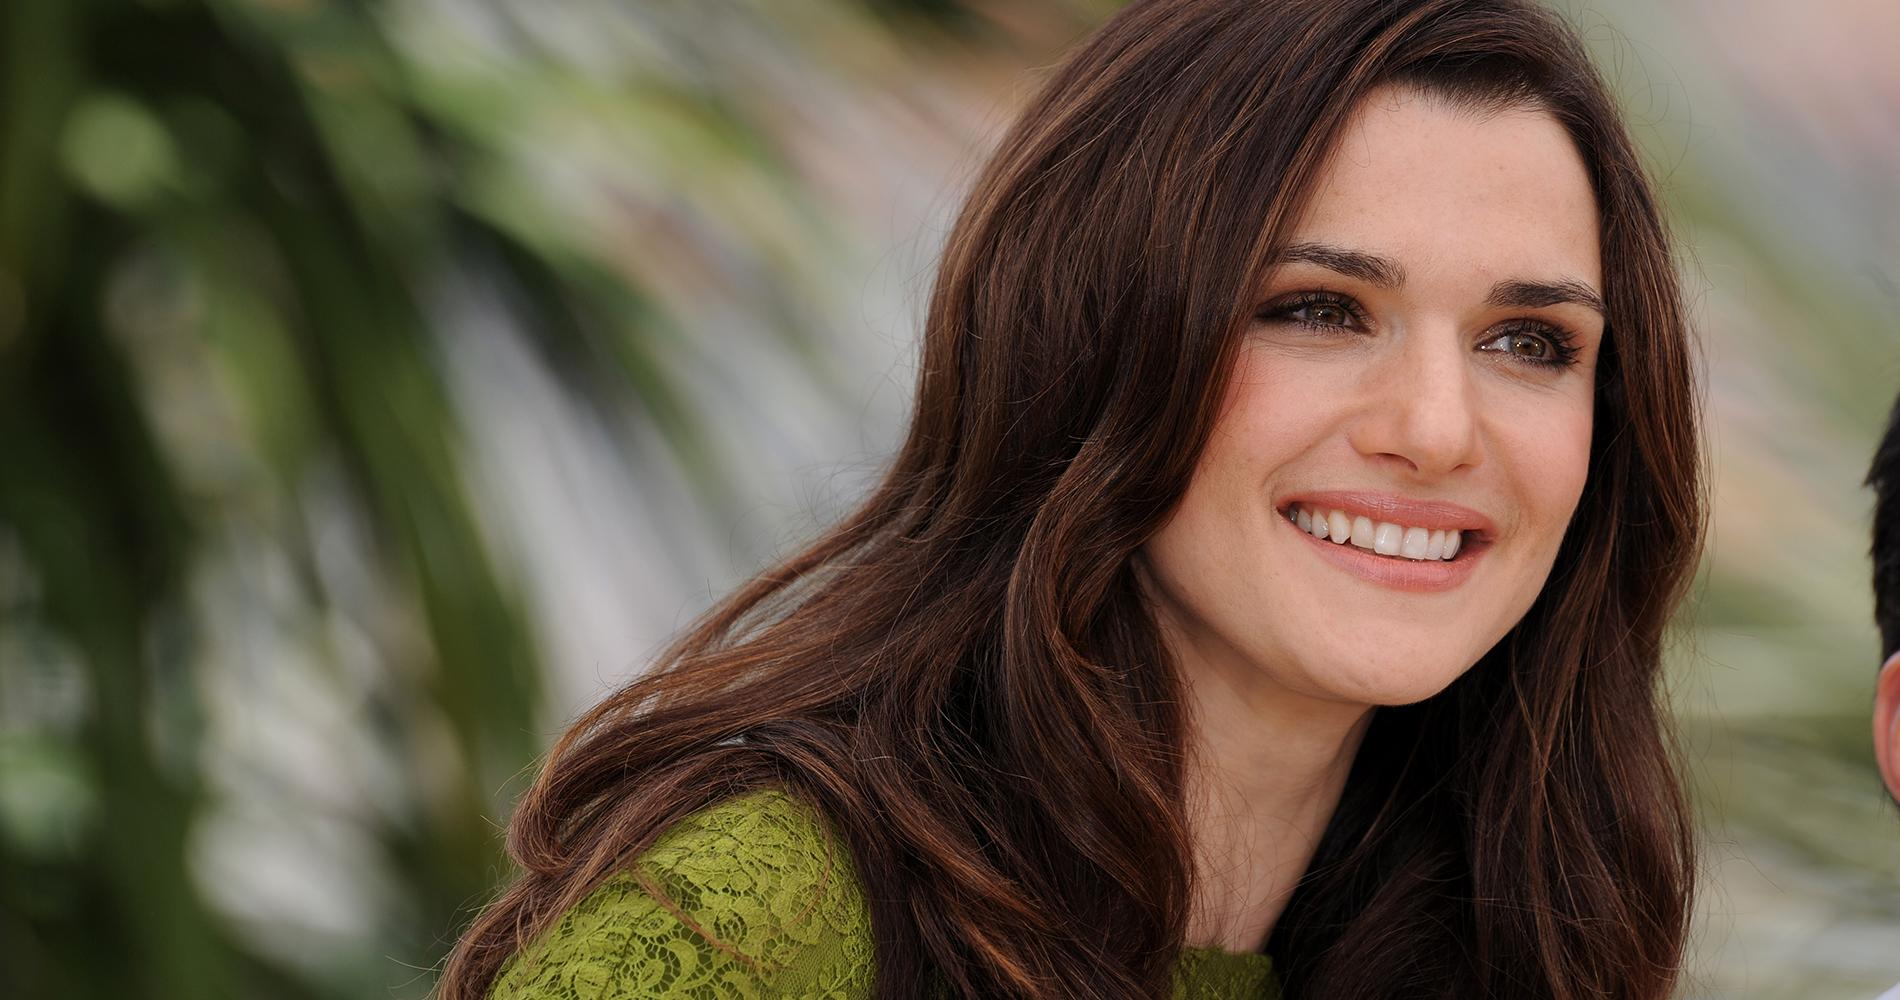 rachel weisz  l u0026 39 intello incandescente d u0026 39 hollywood